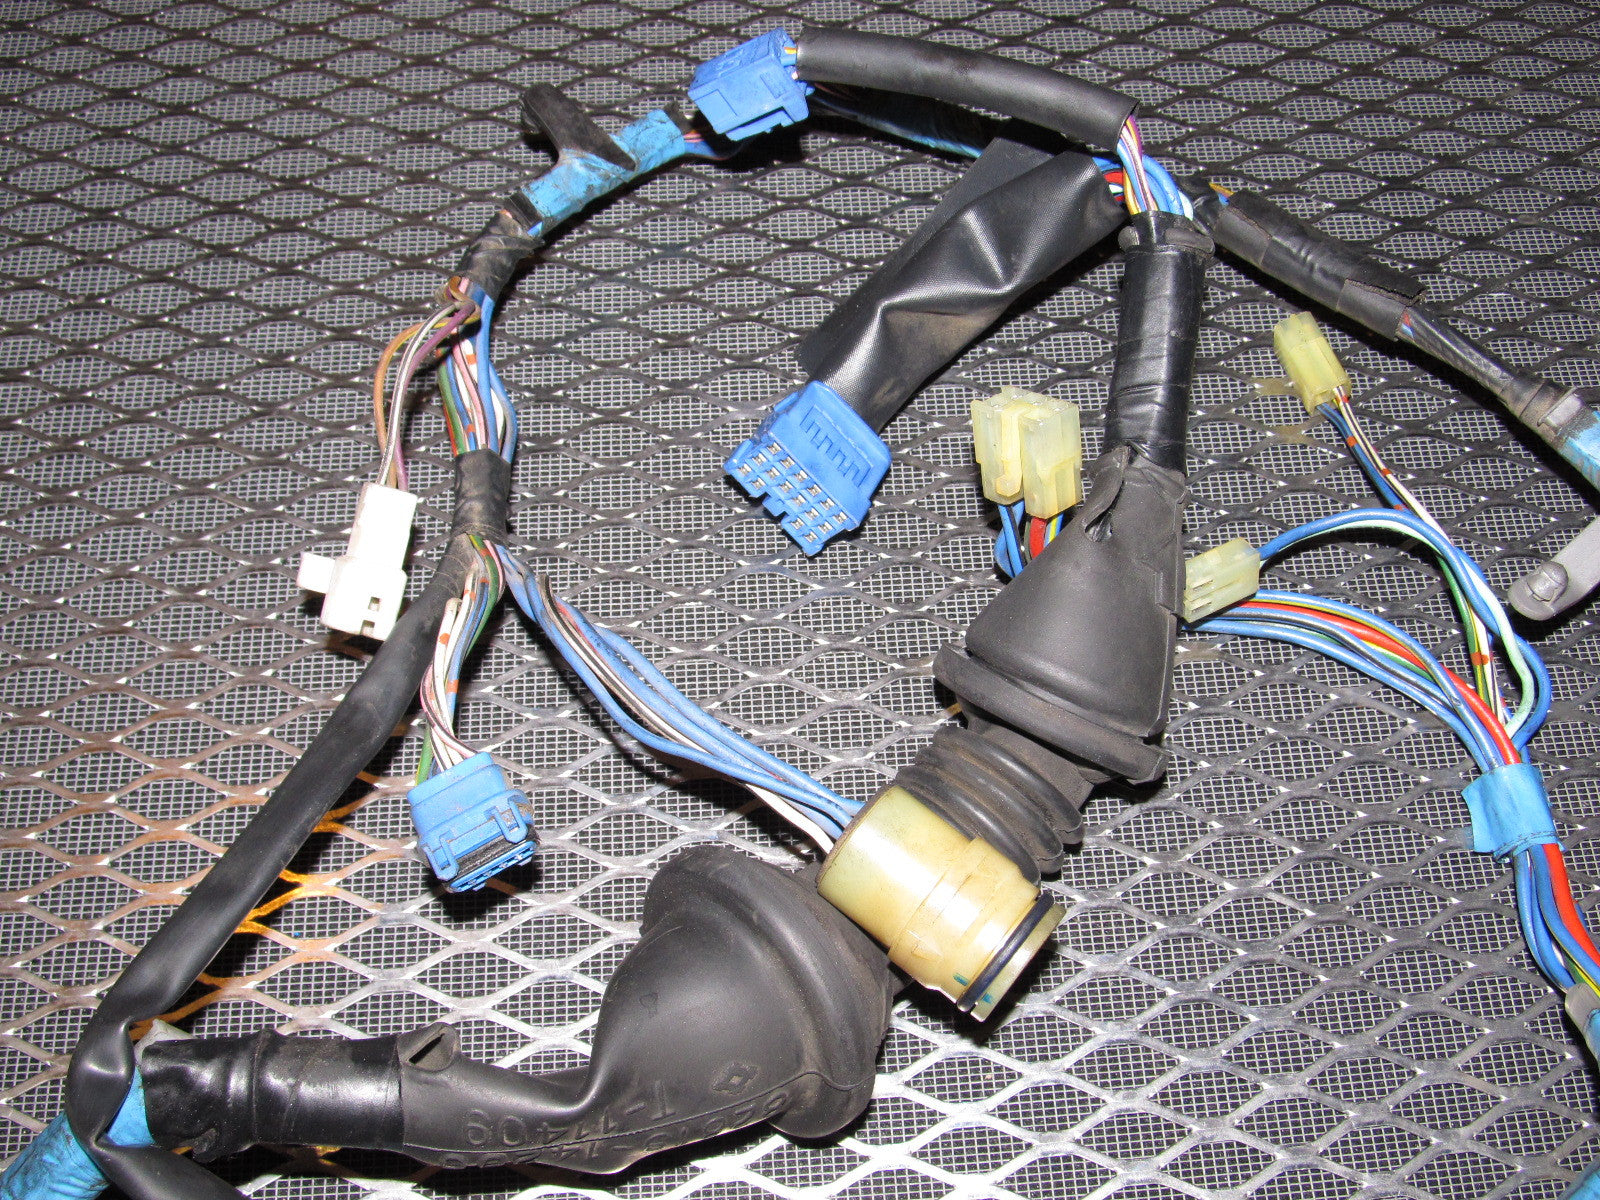 IMG_7084?v=1449022900 89 90 91 92 toyota supra door wiring harness right set 91 supra wiring harness at gsmx.co